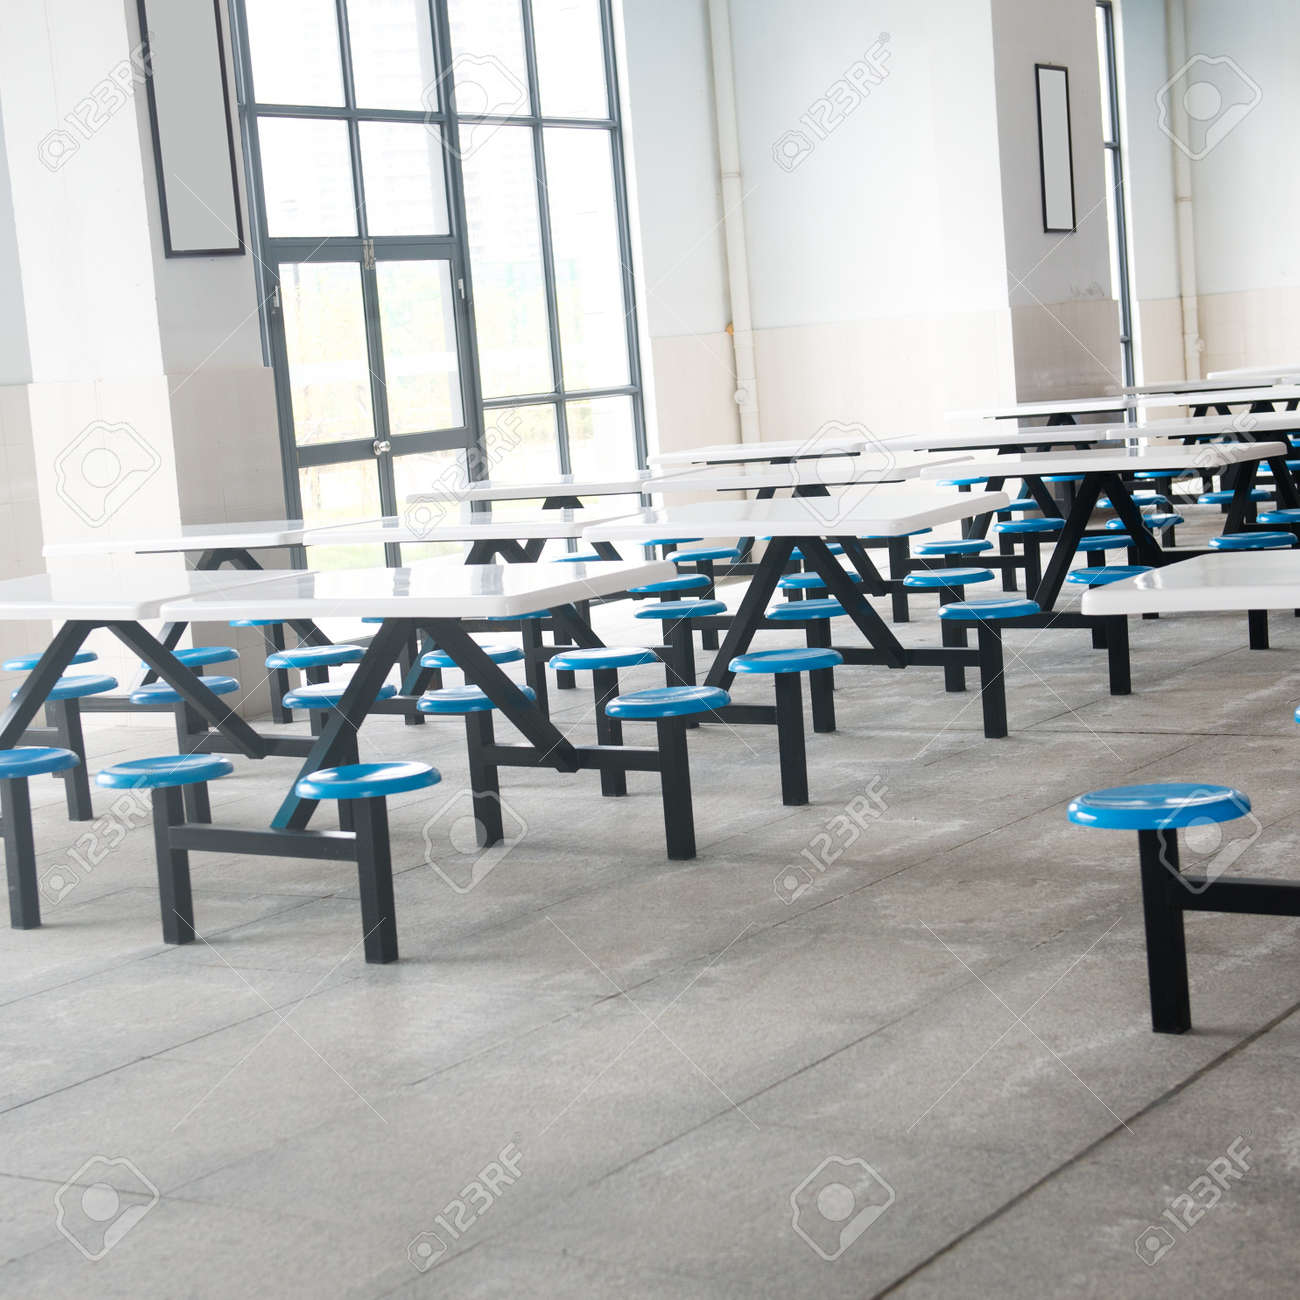 Clean cafeteria tables - Clean School Cafeteria With Many Empty Seats And Tables Stock Photo 17828113